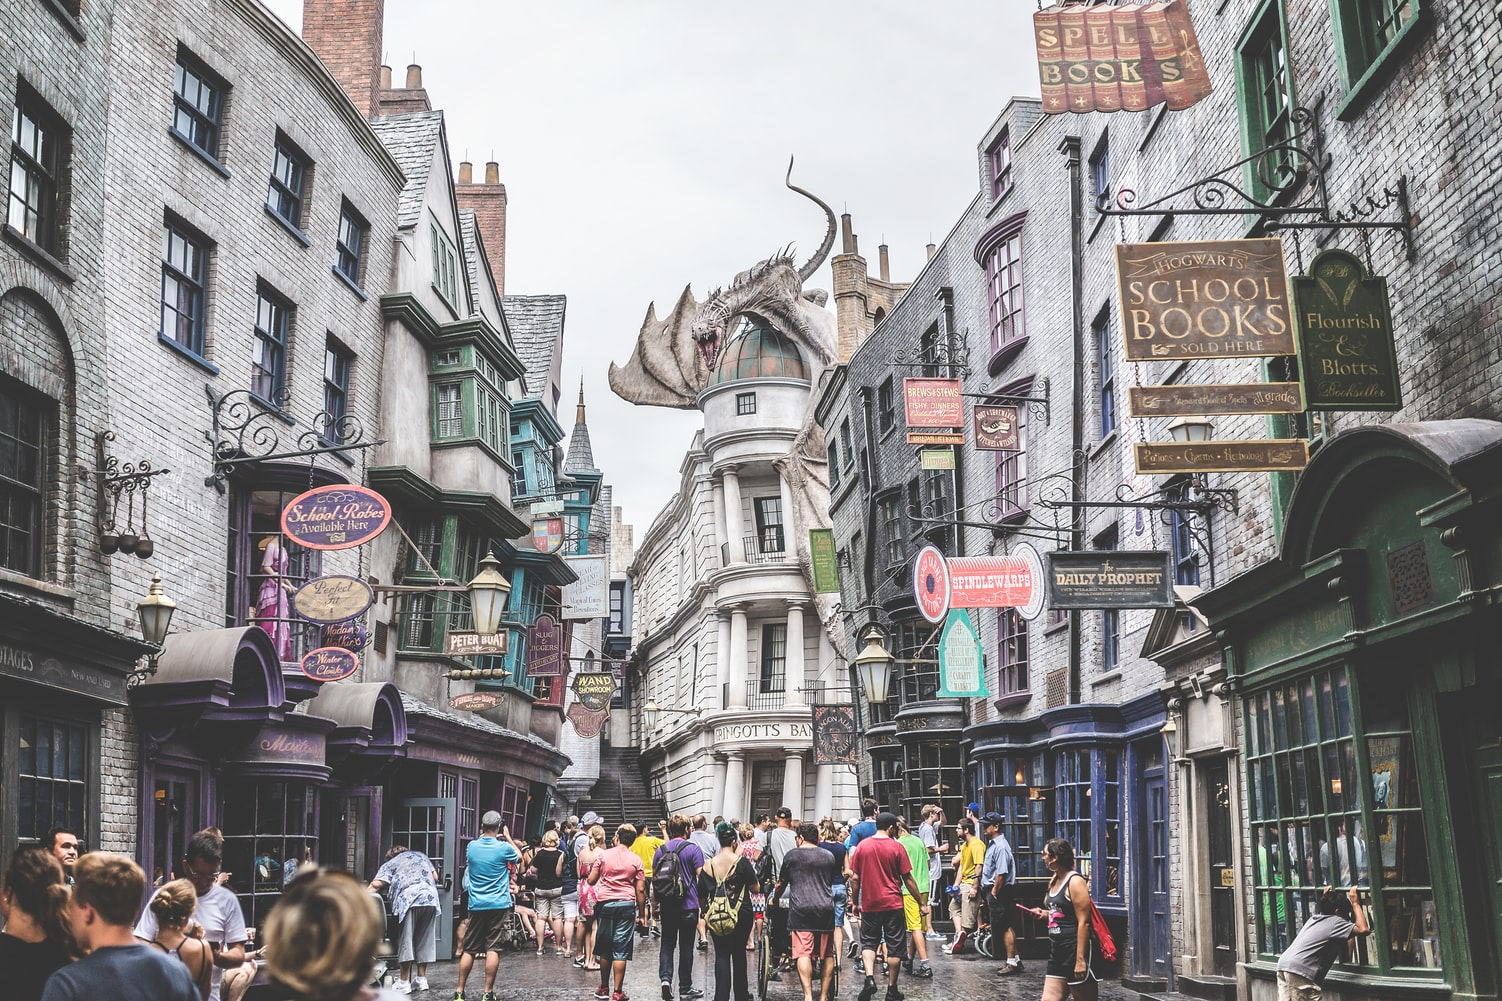 A family visiting The Wizarding World of Harry Potter at Universal Studios Orlando